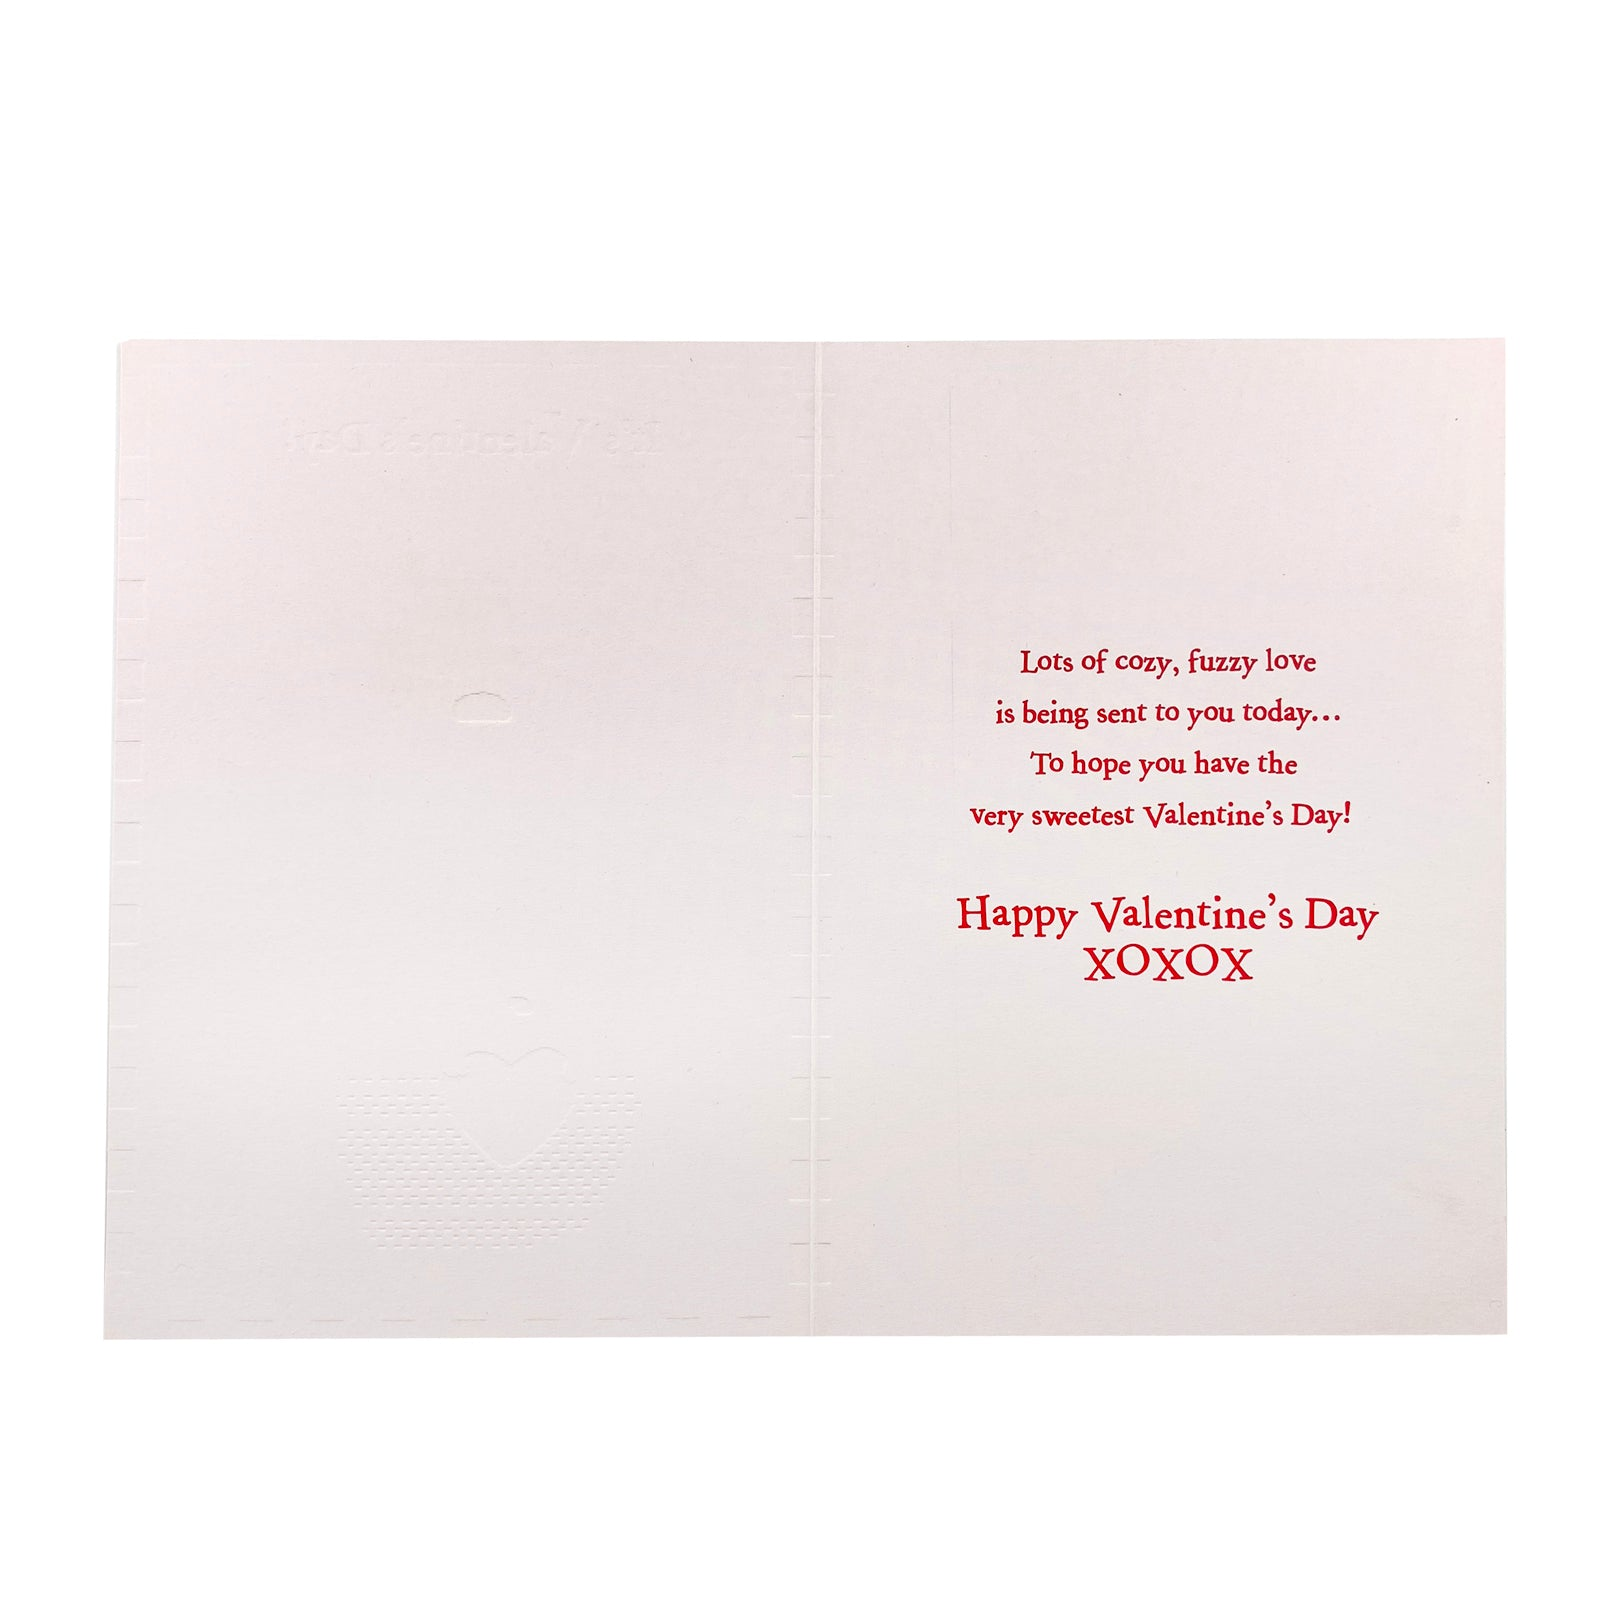 Designer Greetings Valentine's Day Card - It'S Valentine's Day Kangaroos